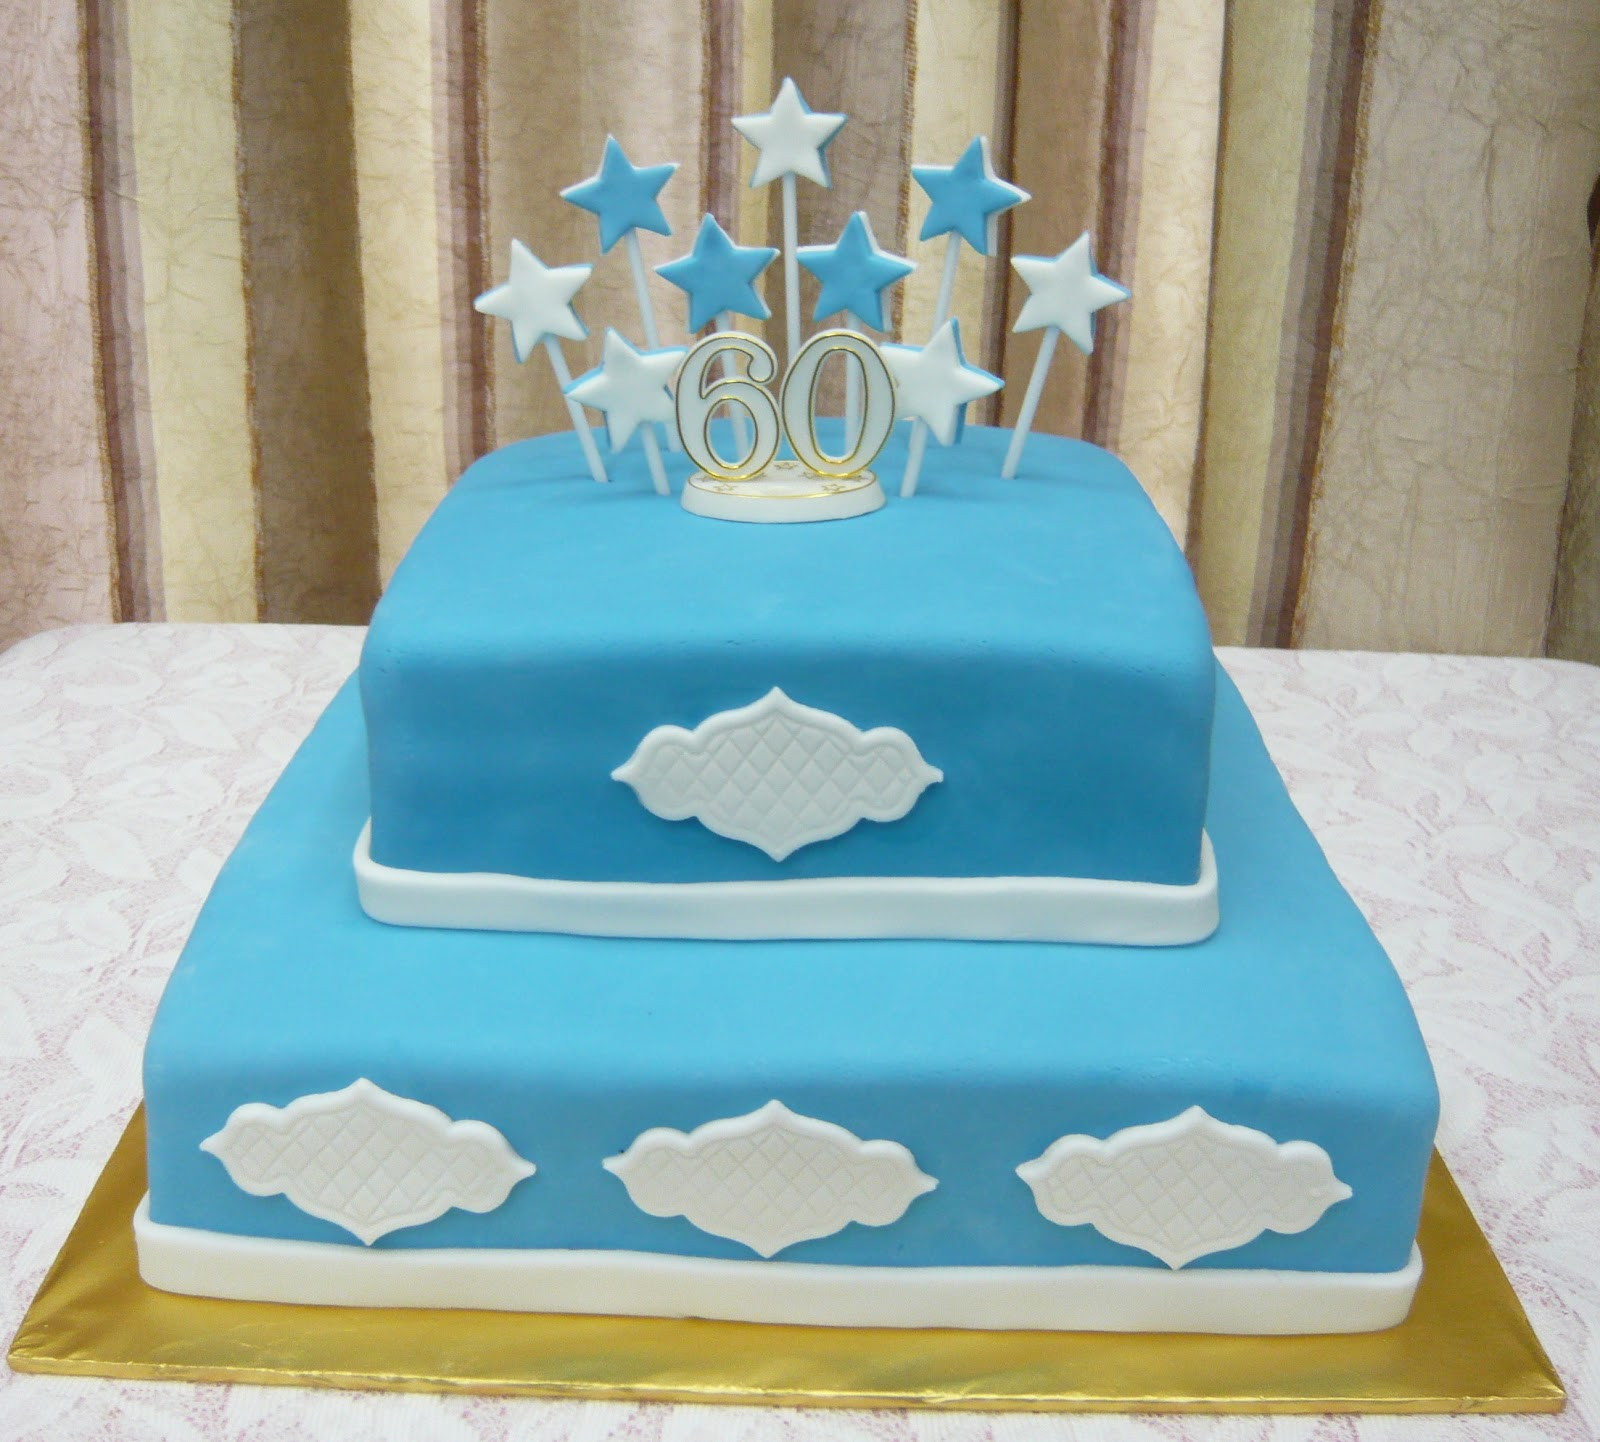 60th Birthday Cake Commissioned For Our Youth Counsellor Who Is Turning 60